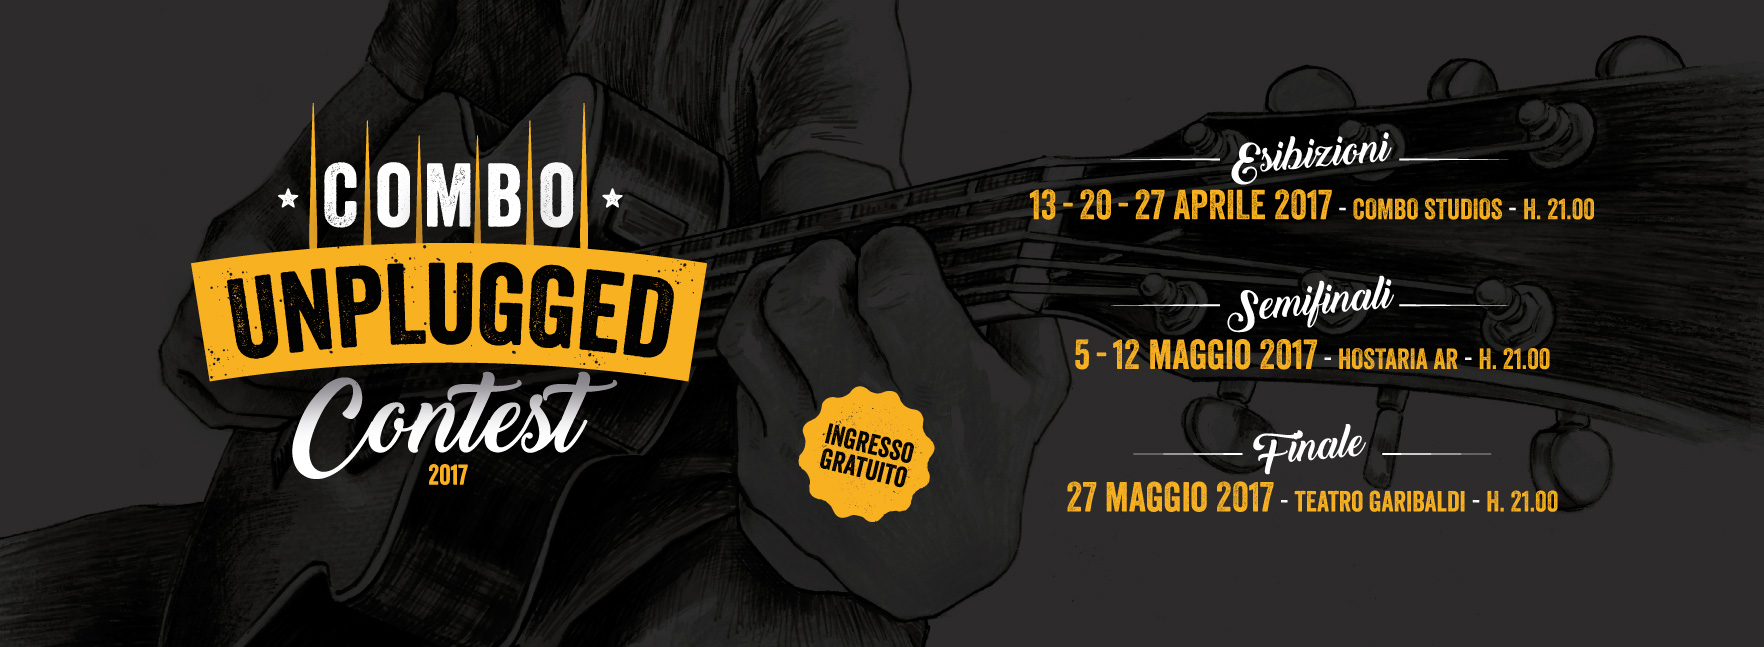 Combo Unplugged Contest 2017 – Calendario esibizioni live